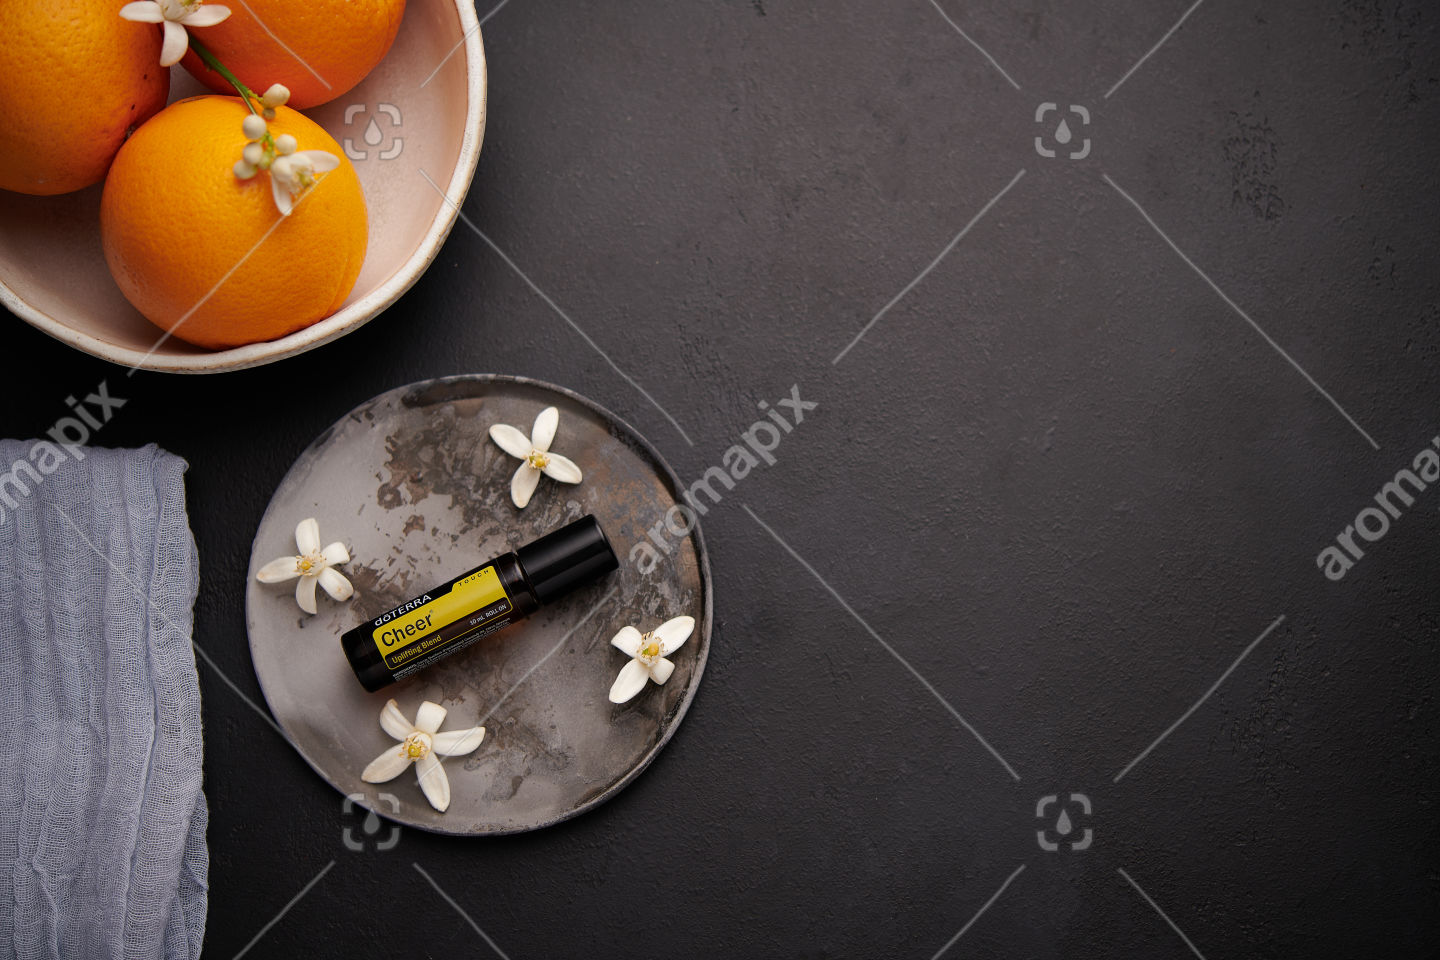 doTERRA Cheer Touch with orange blossoms on black